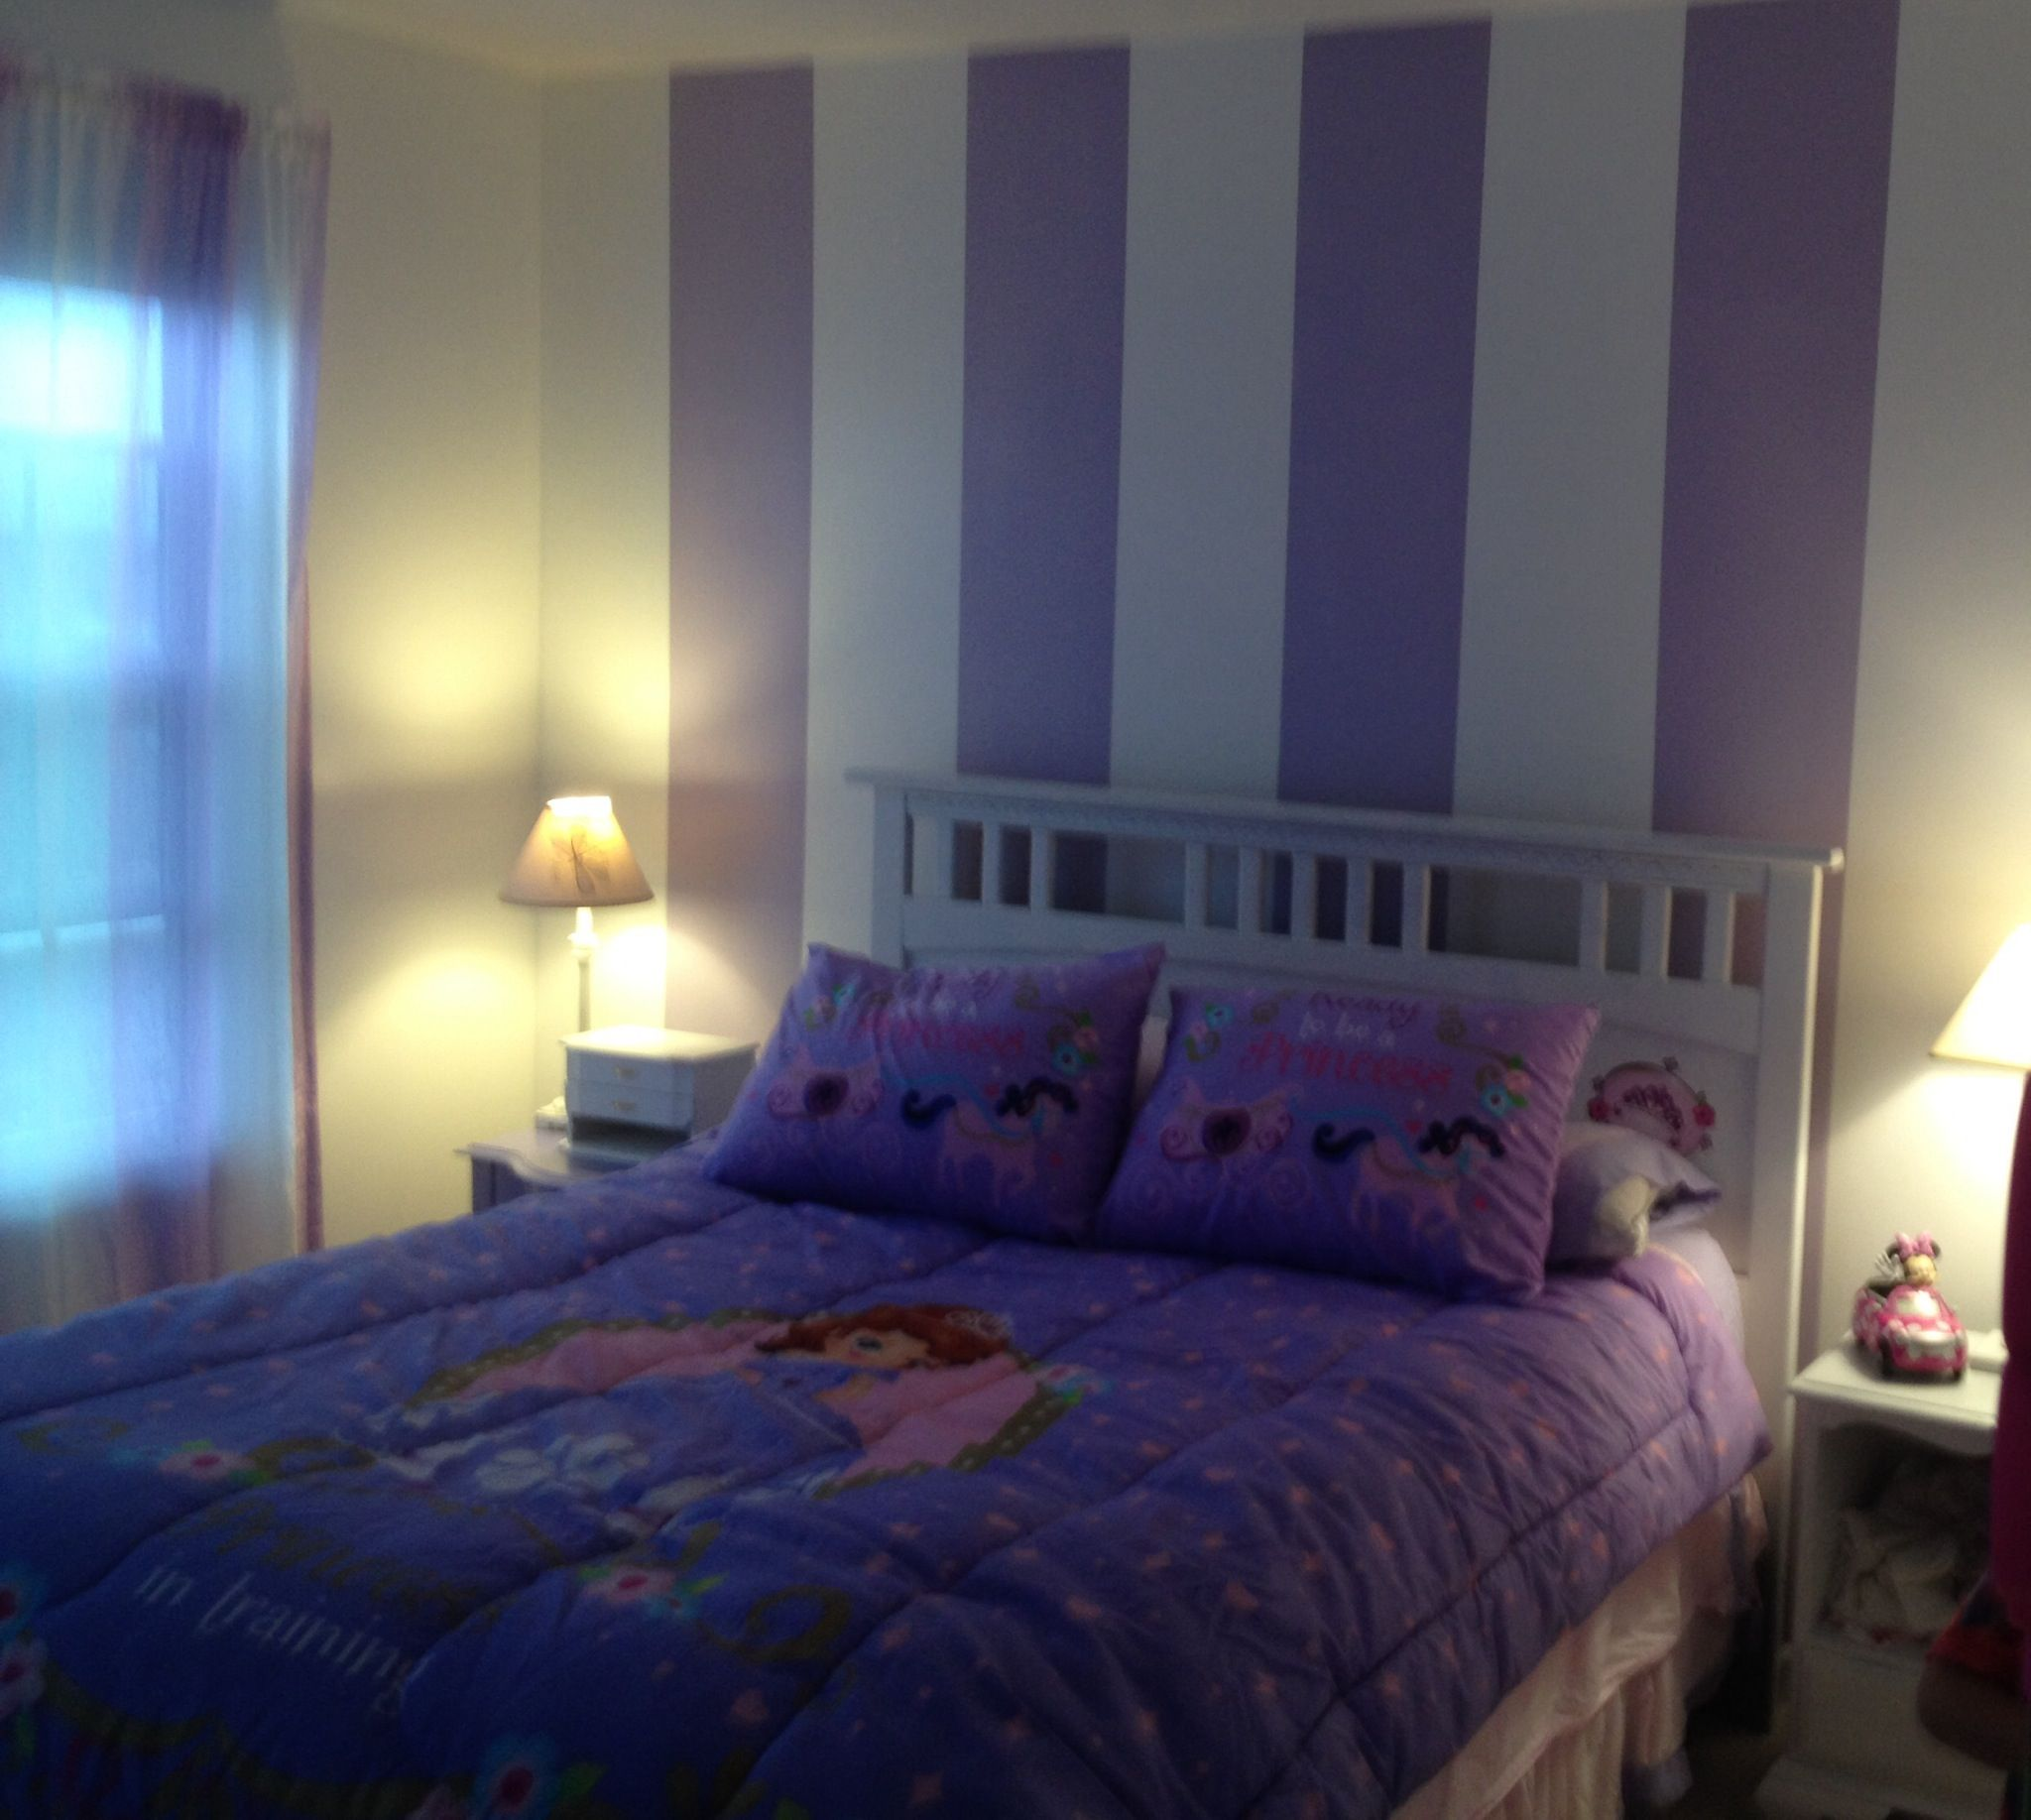 Sofia the first bedroom ophelia 39 s space pinterest - Sofia the first bedroom ...